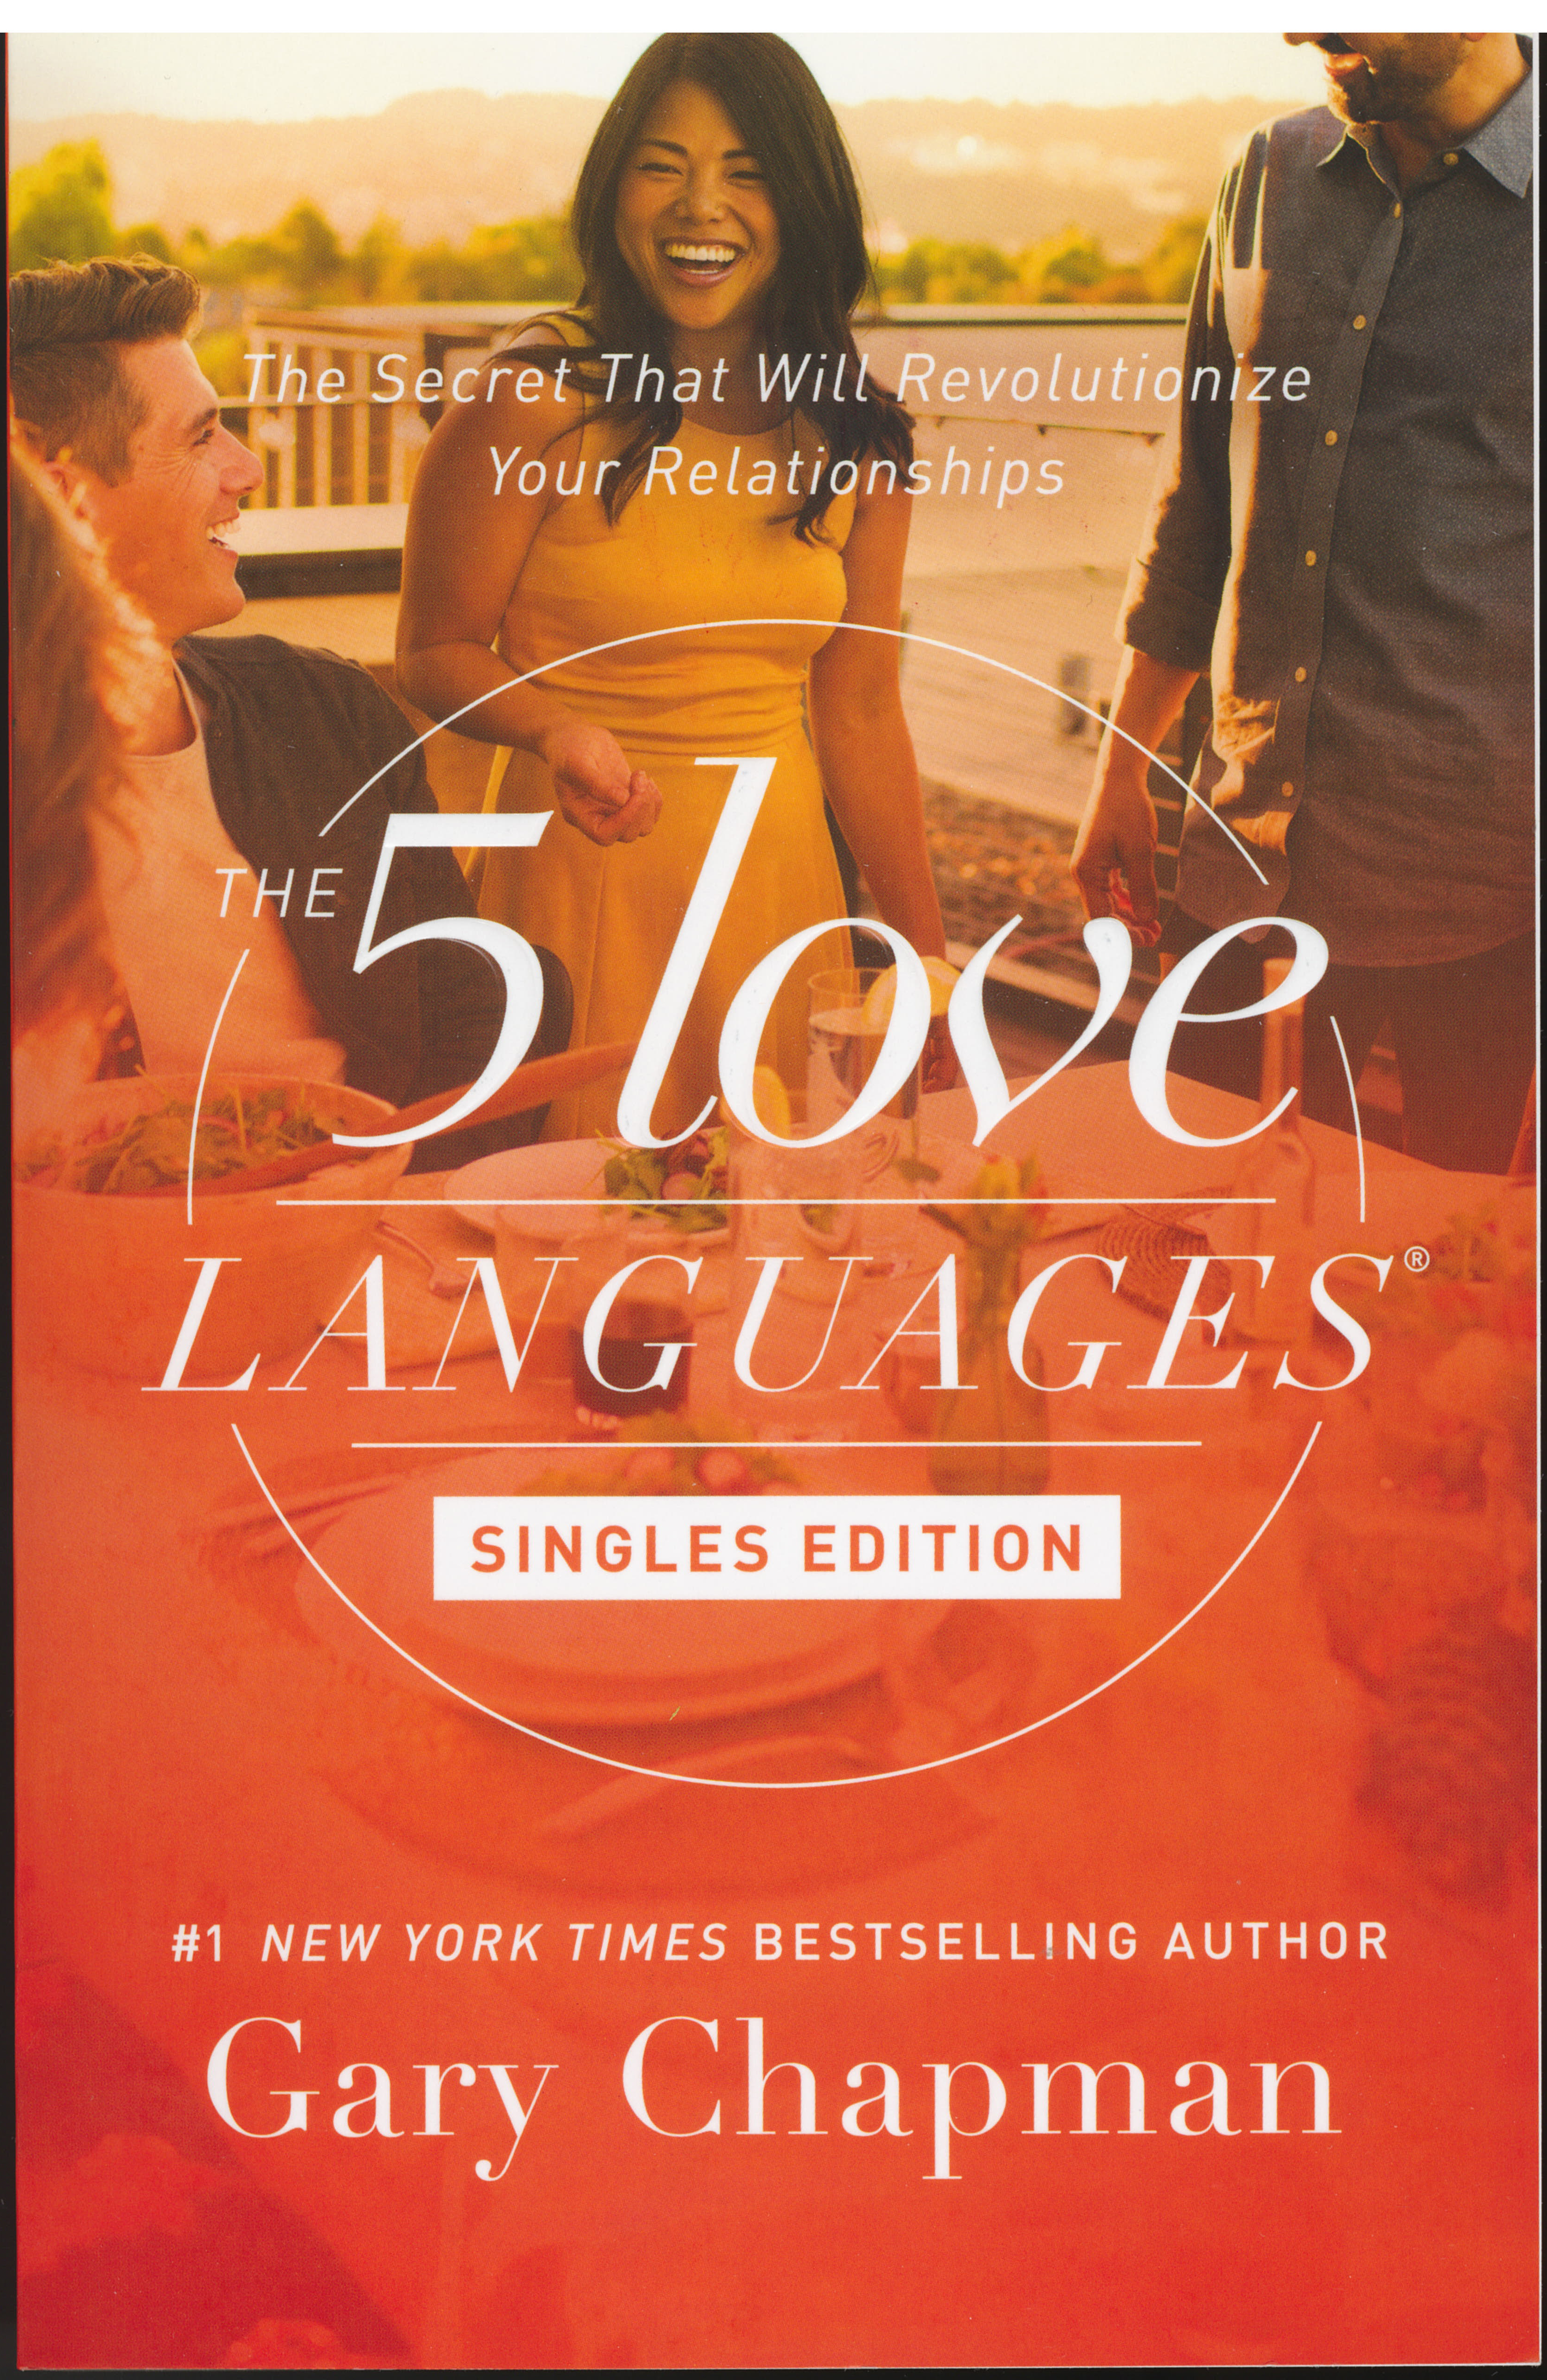 The 5 Love Languages Singles Edition: The Secret That Will Revolutionize Your Relationships by Gary Chapman  9780802414816